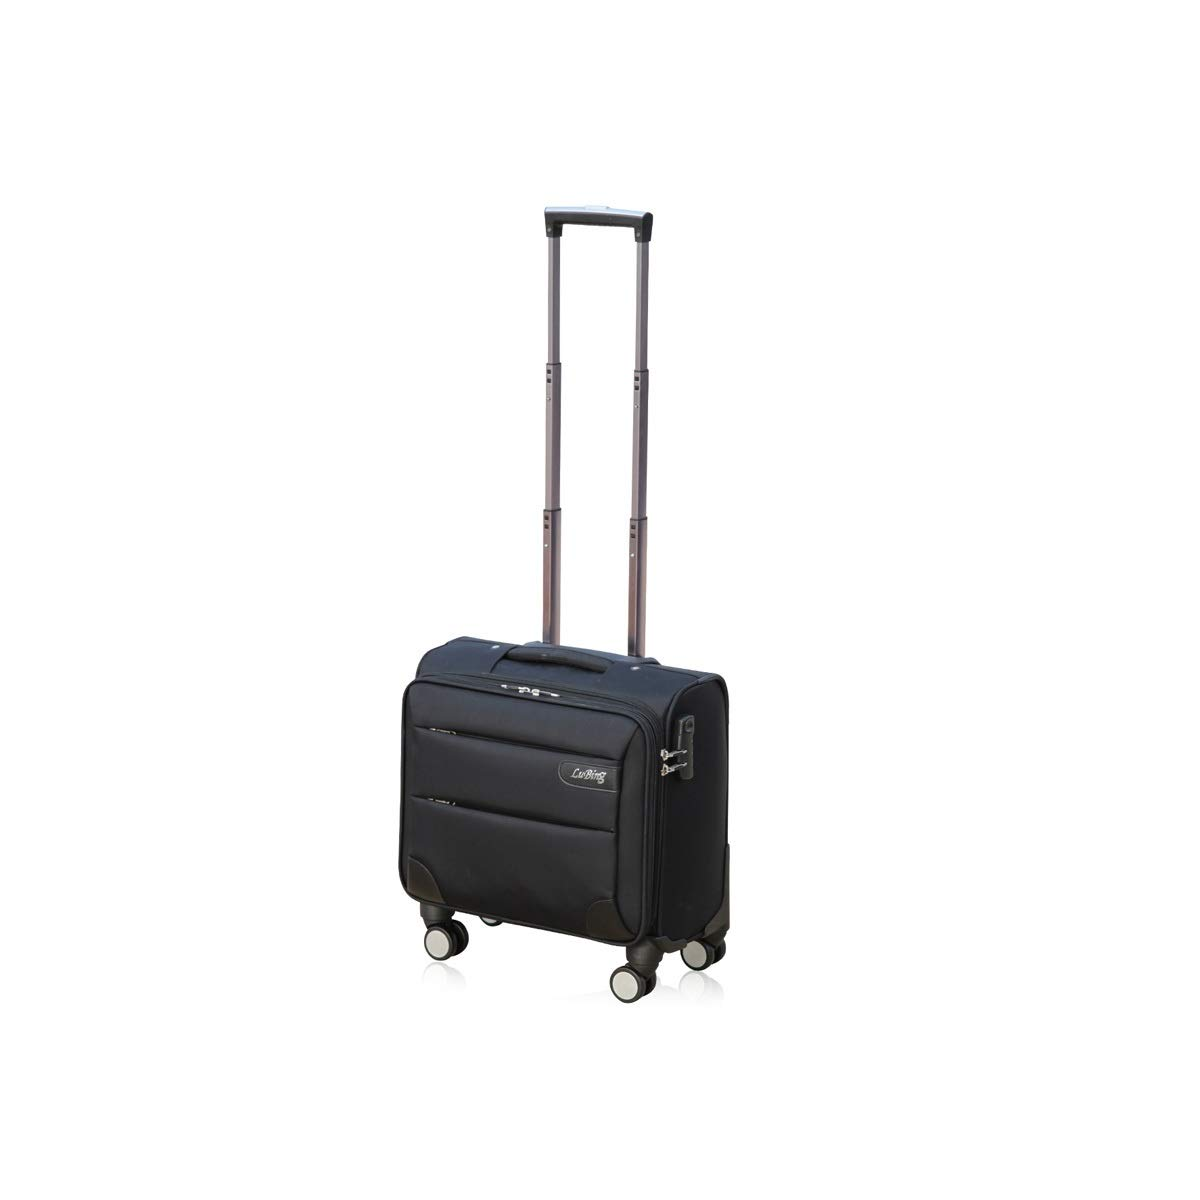 14//16//18//20 Inches 8haowenju Soft Rotating Luggage Carrying Luggage Trolley Case Travel Storage Box Best Gift Boarding Color : Black, Size : 16 inches